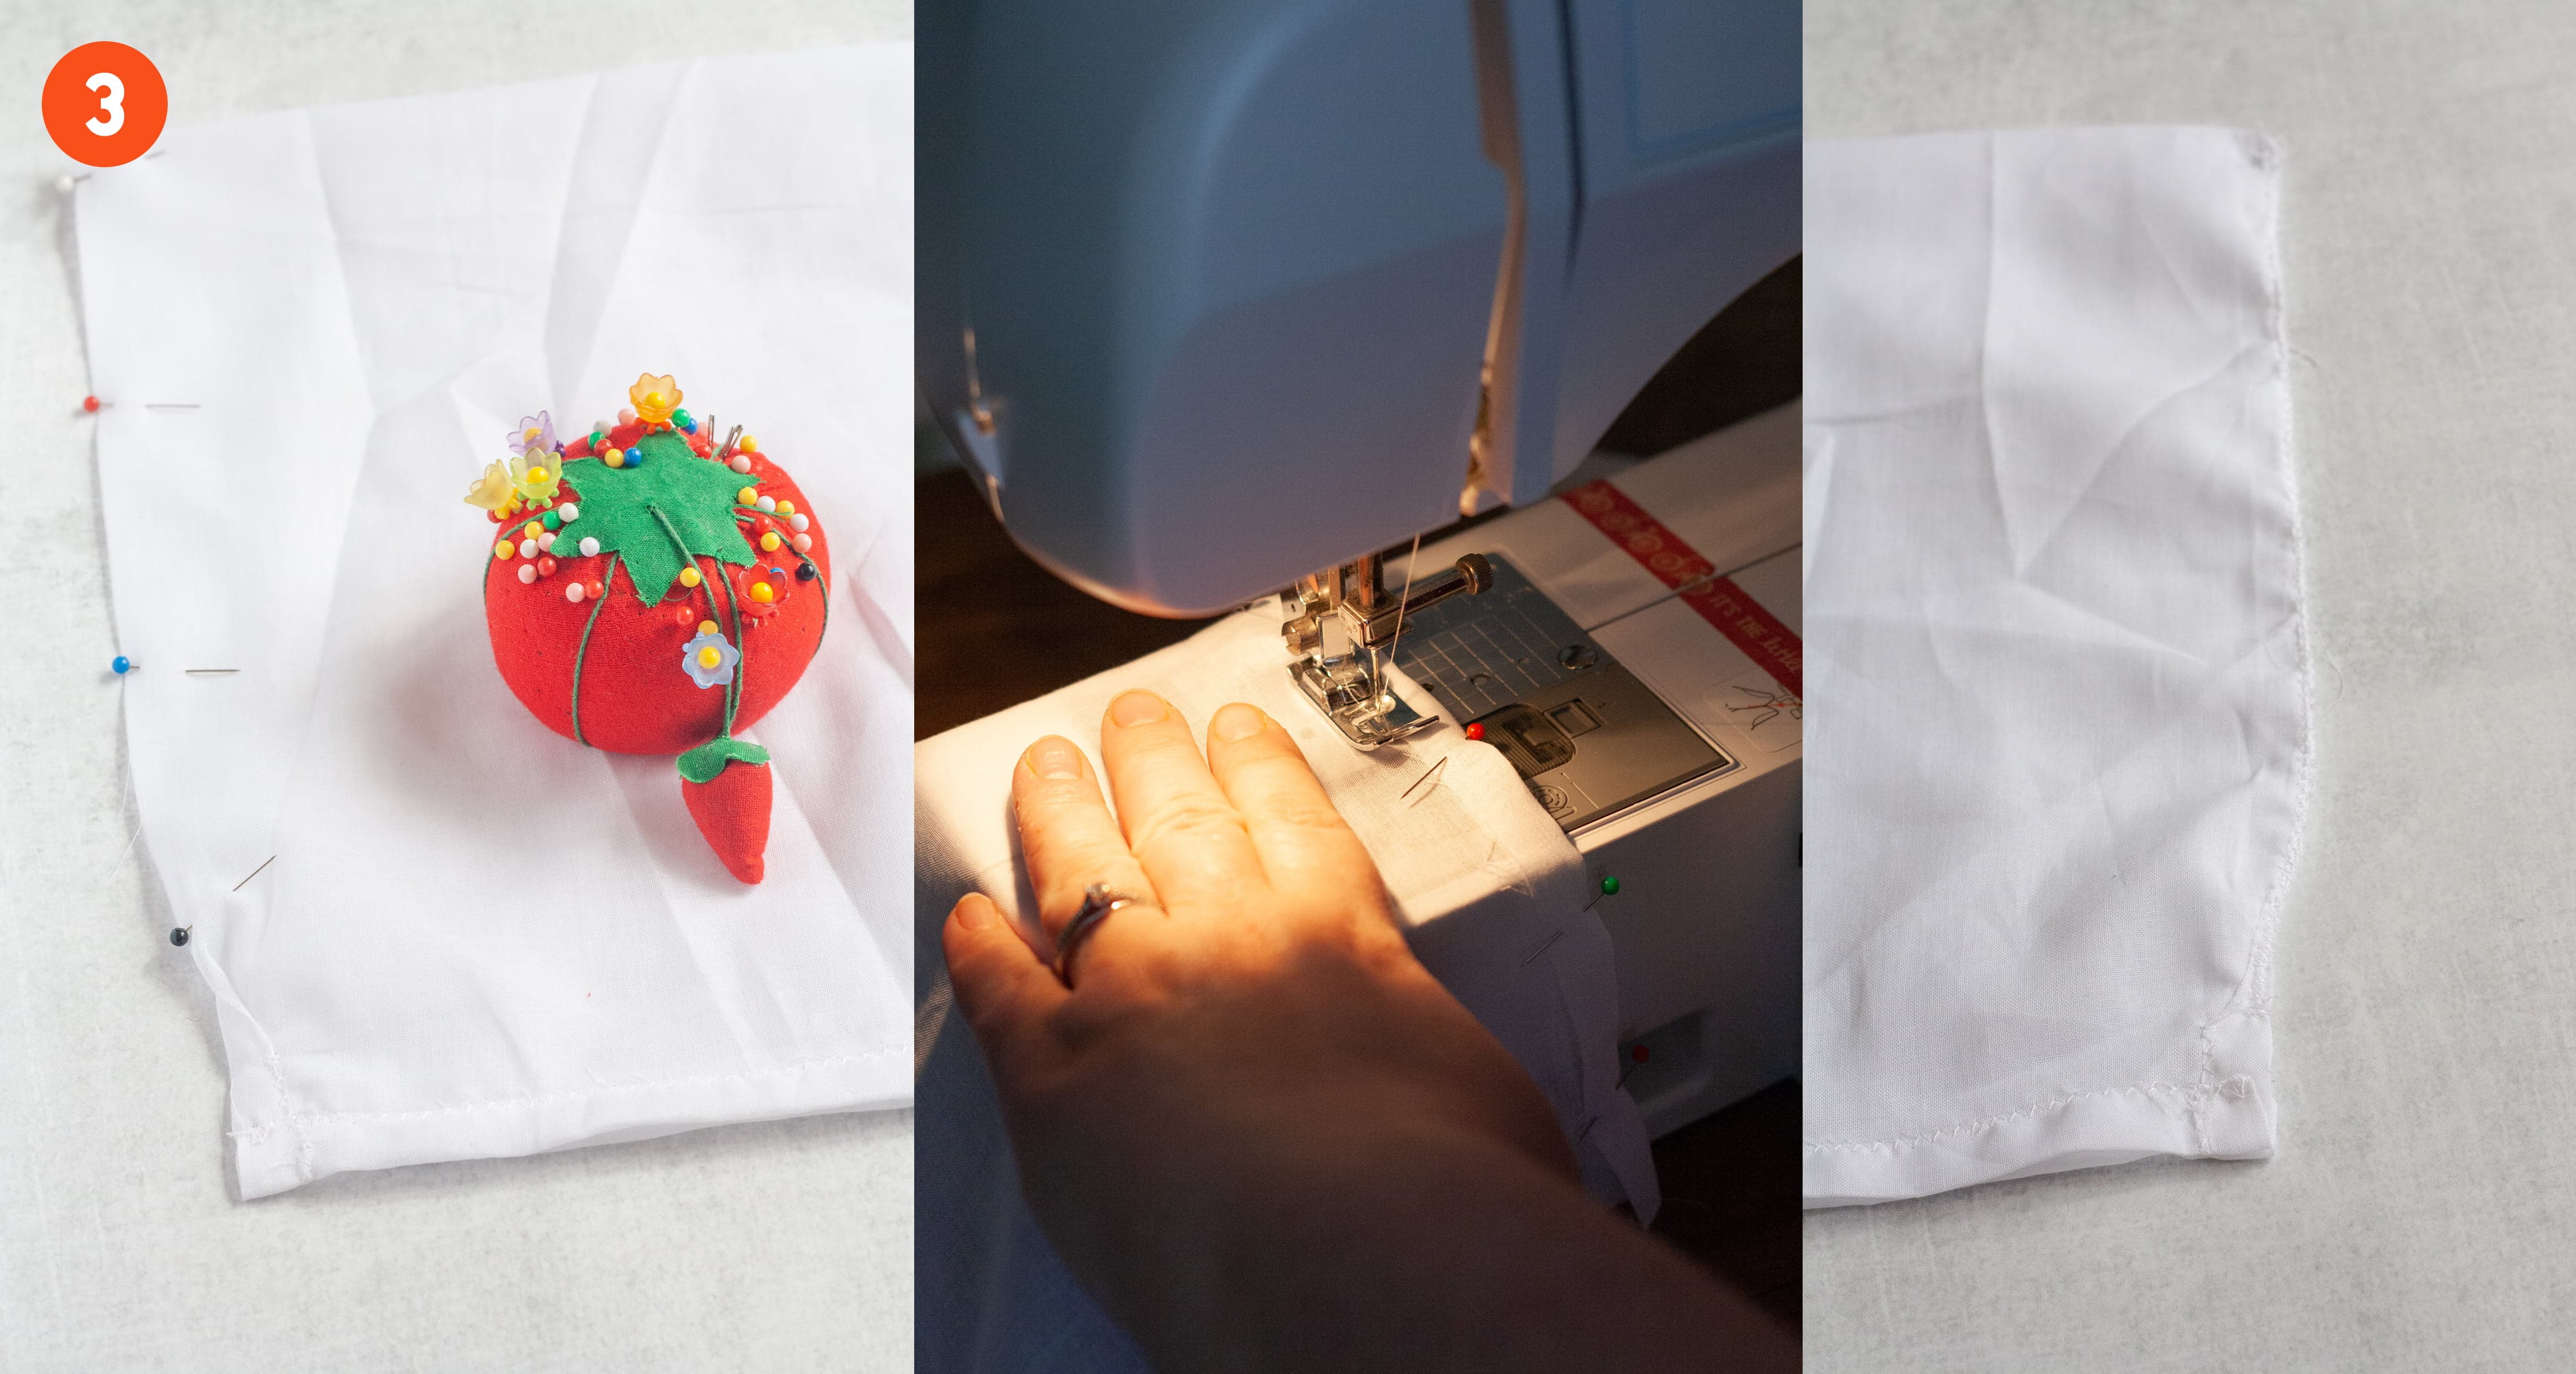 3 images side-by-side showing how to sew a reusable produce bag together. On the left, sides of a bag are pinned together, ready to be sewn. In the middle, the fabric is being fed through a sewing machine. On the third, the sides are sewn. Labeled with 3.